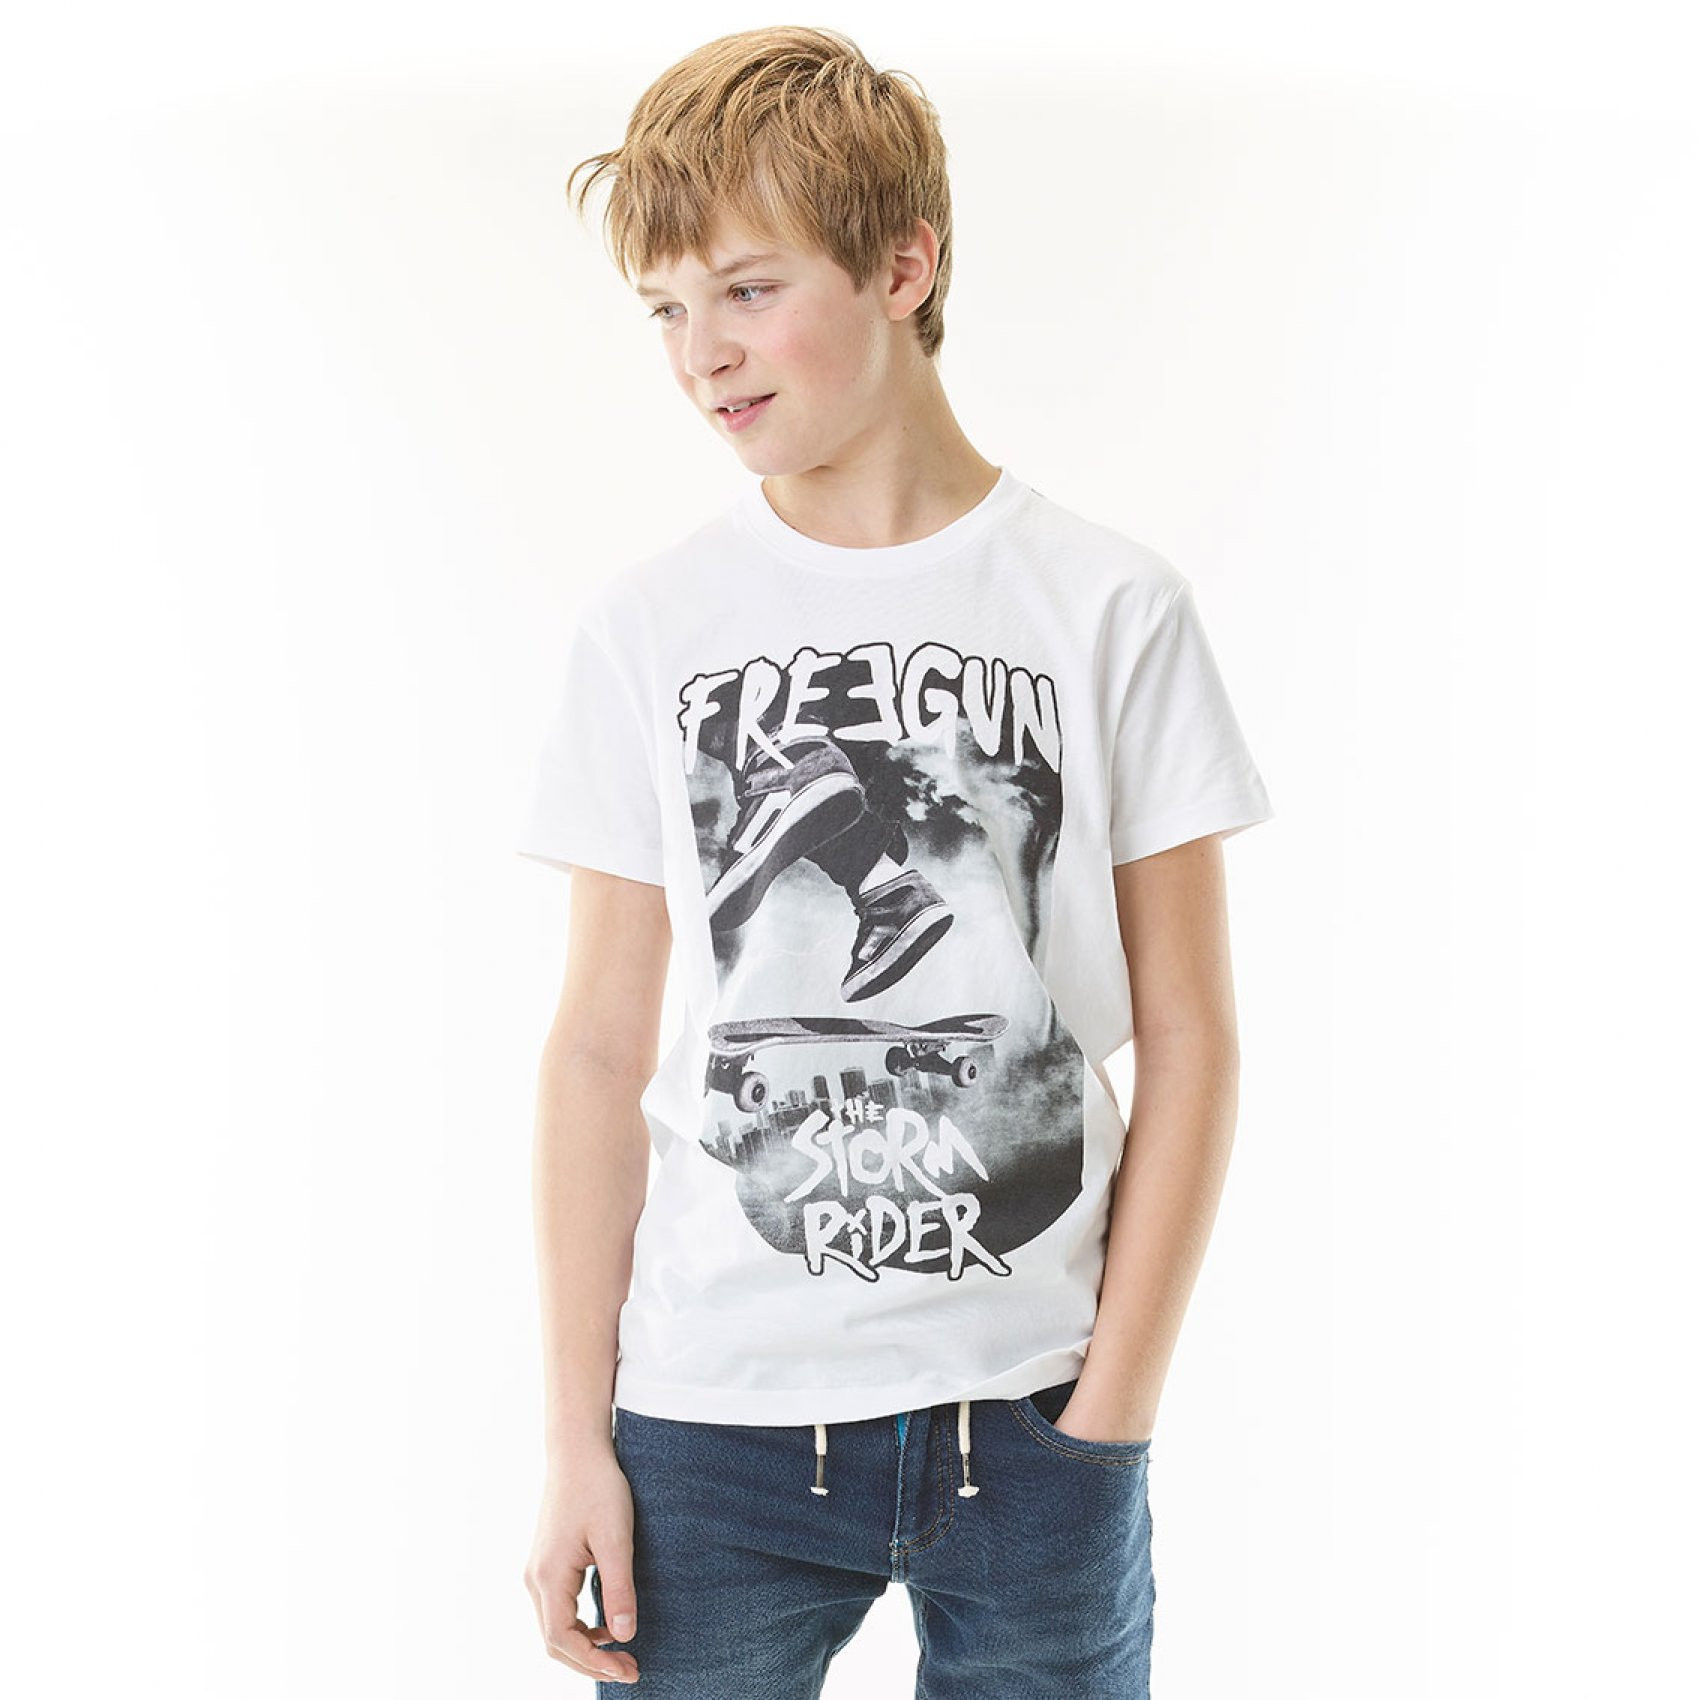 T-shirt garçon storm rider freegun (photo)